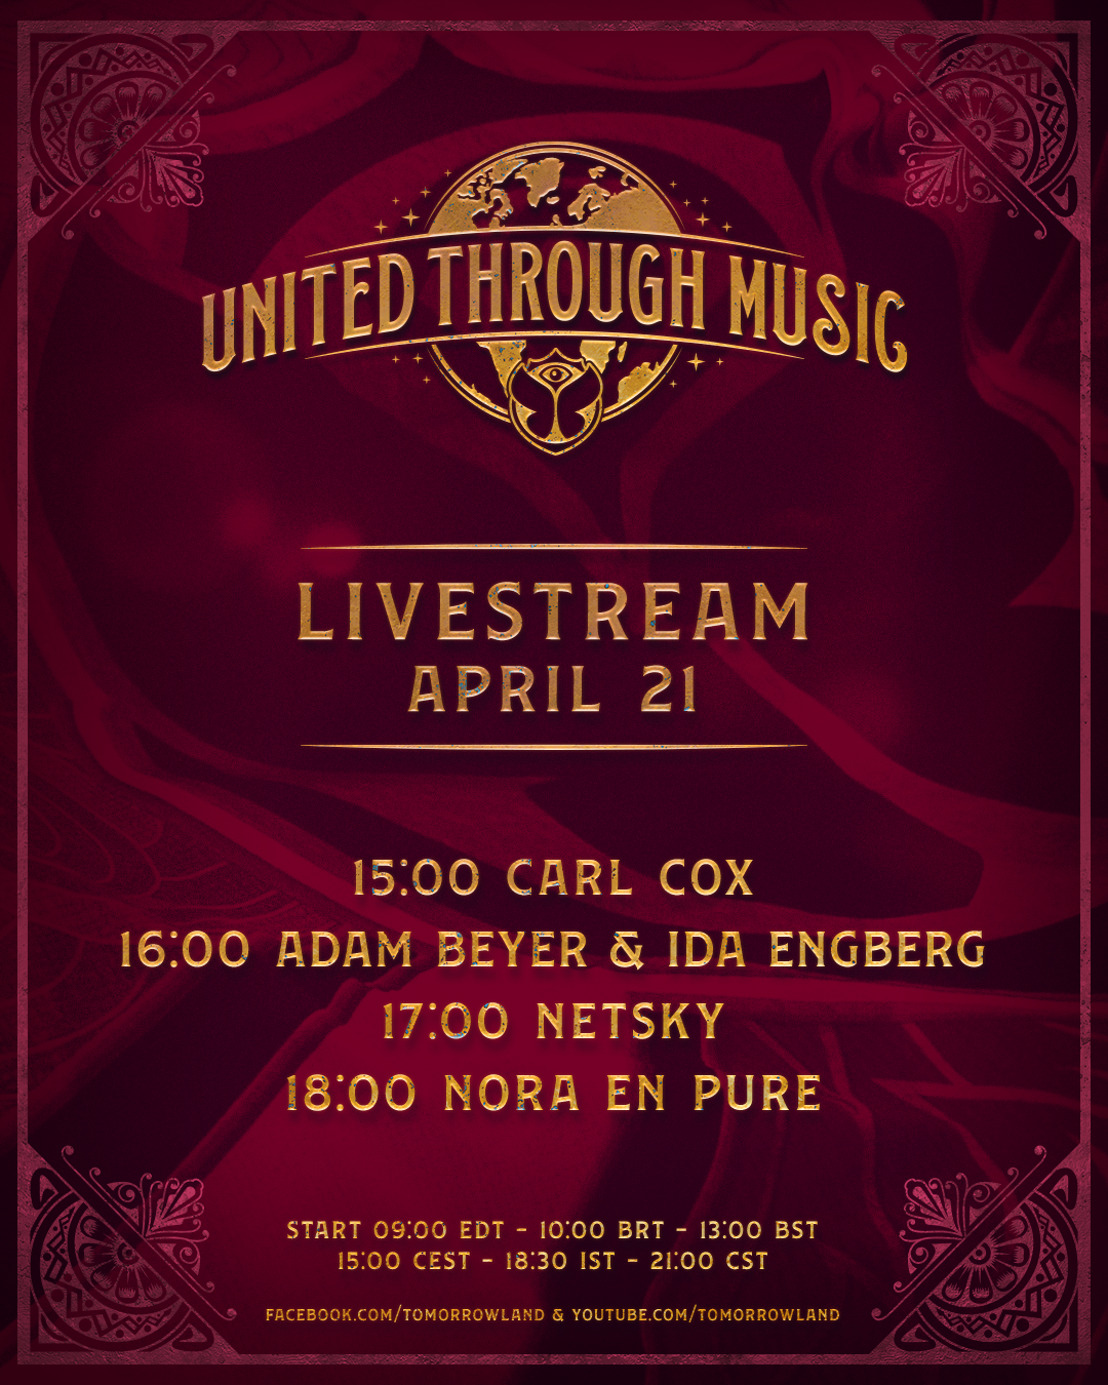 'Tomorrowland Presents: United Through Music' features special performances from Carl Cox, Adam Beyer & Ida Engberg, Nora En Pure and Netsky this week